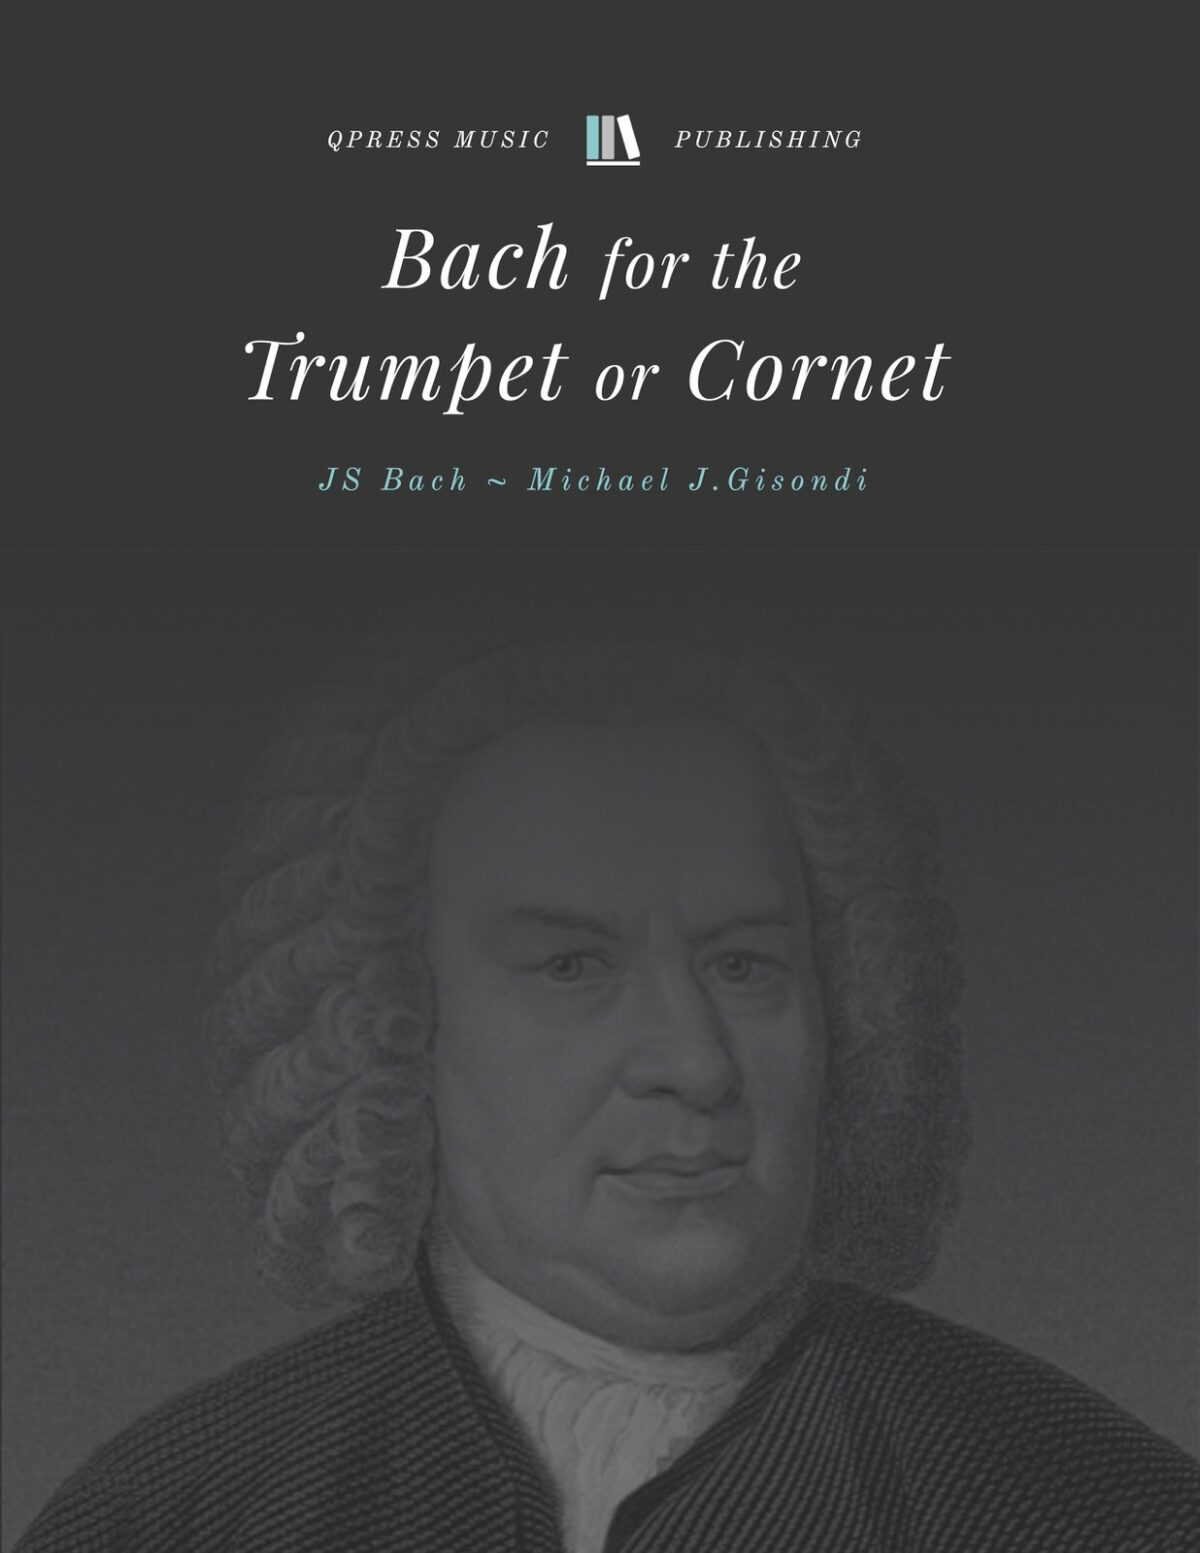 Bach-Gisondi, Bach for the Trumpet or Cornet-p01